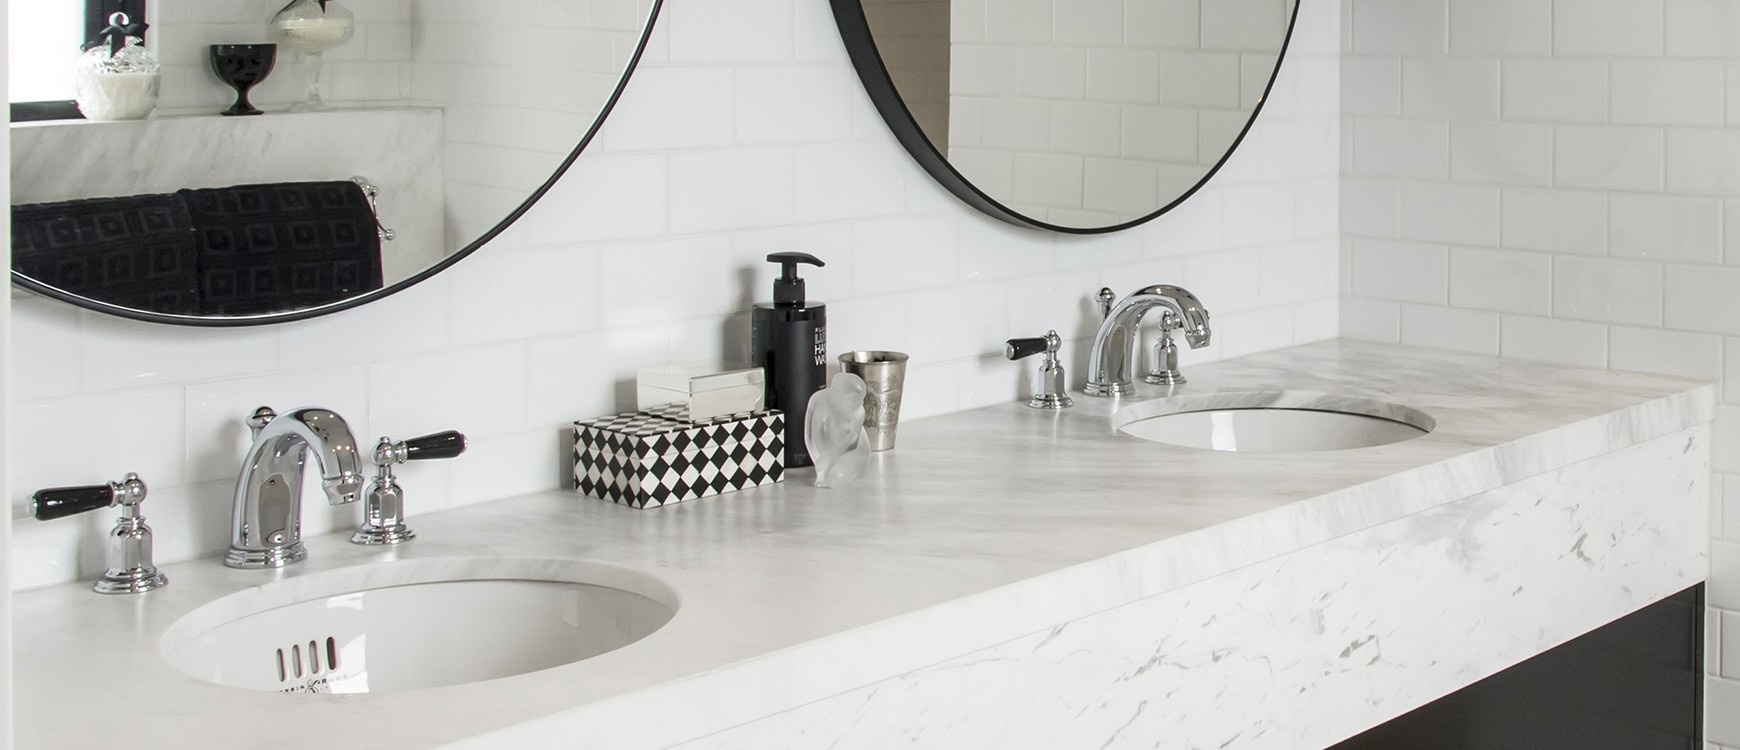 Black & White Bathrooms | Subway Tiles | Black and White | The ...